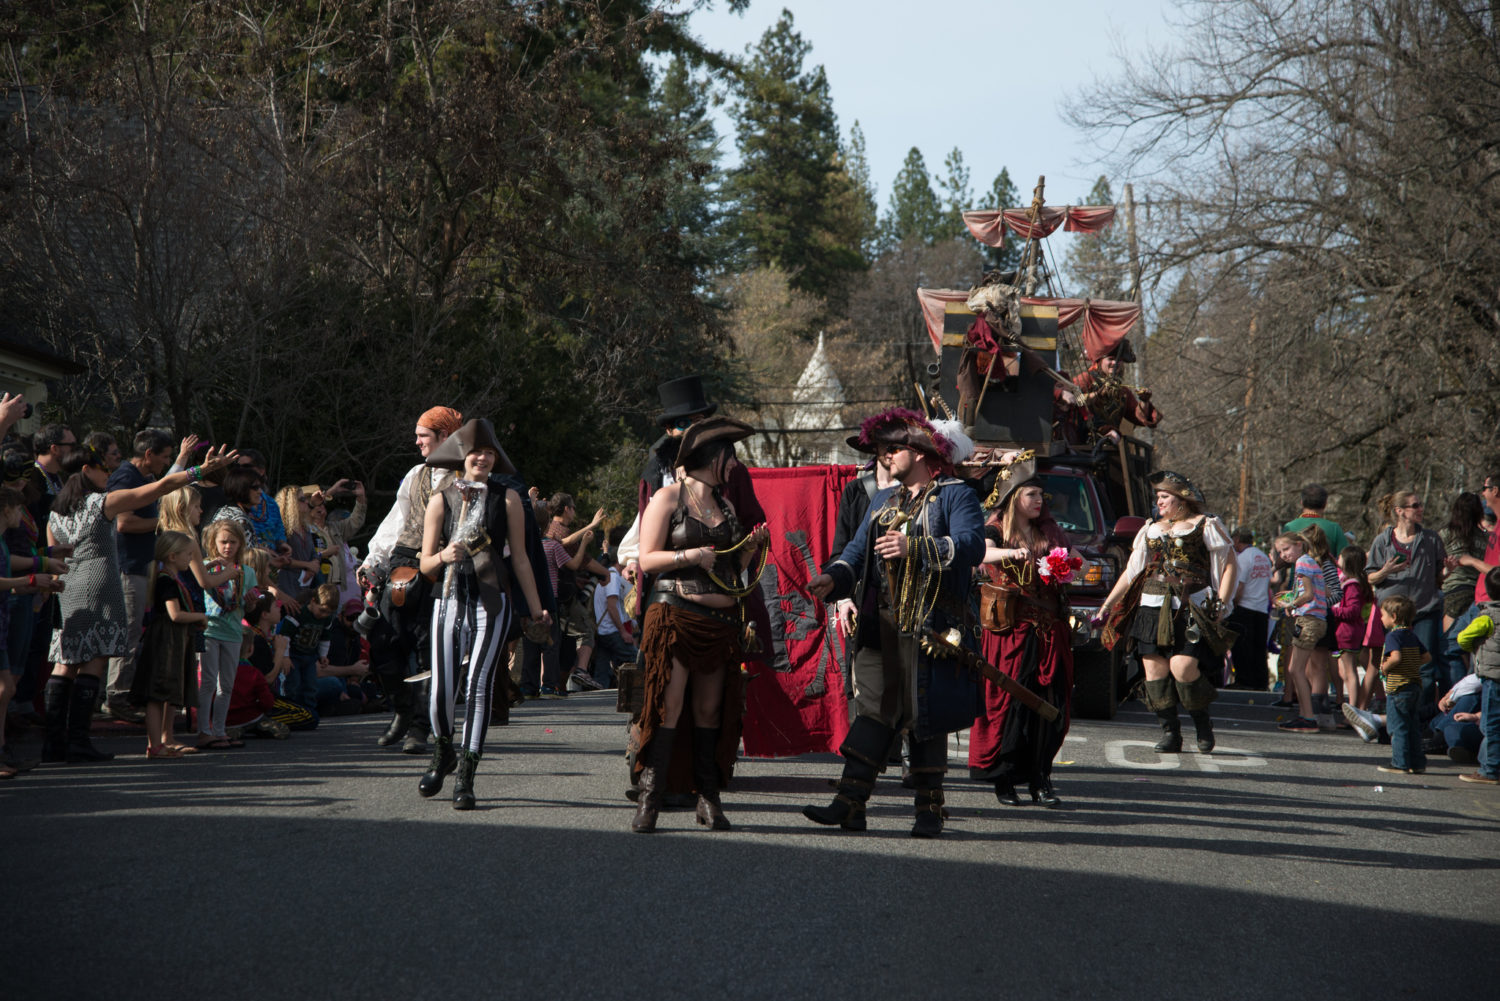 2018 Nevada City Mardi Gras Celebration